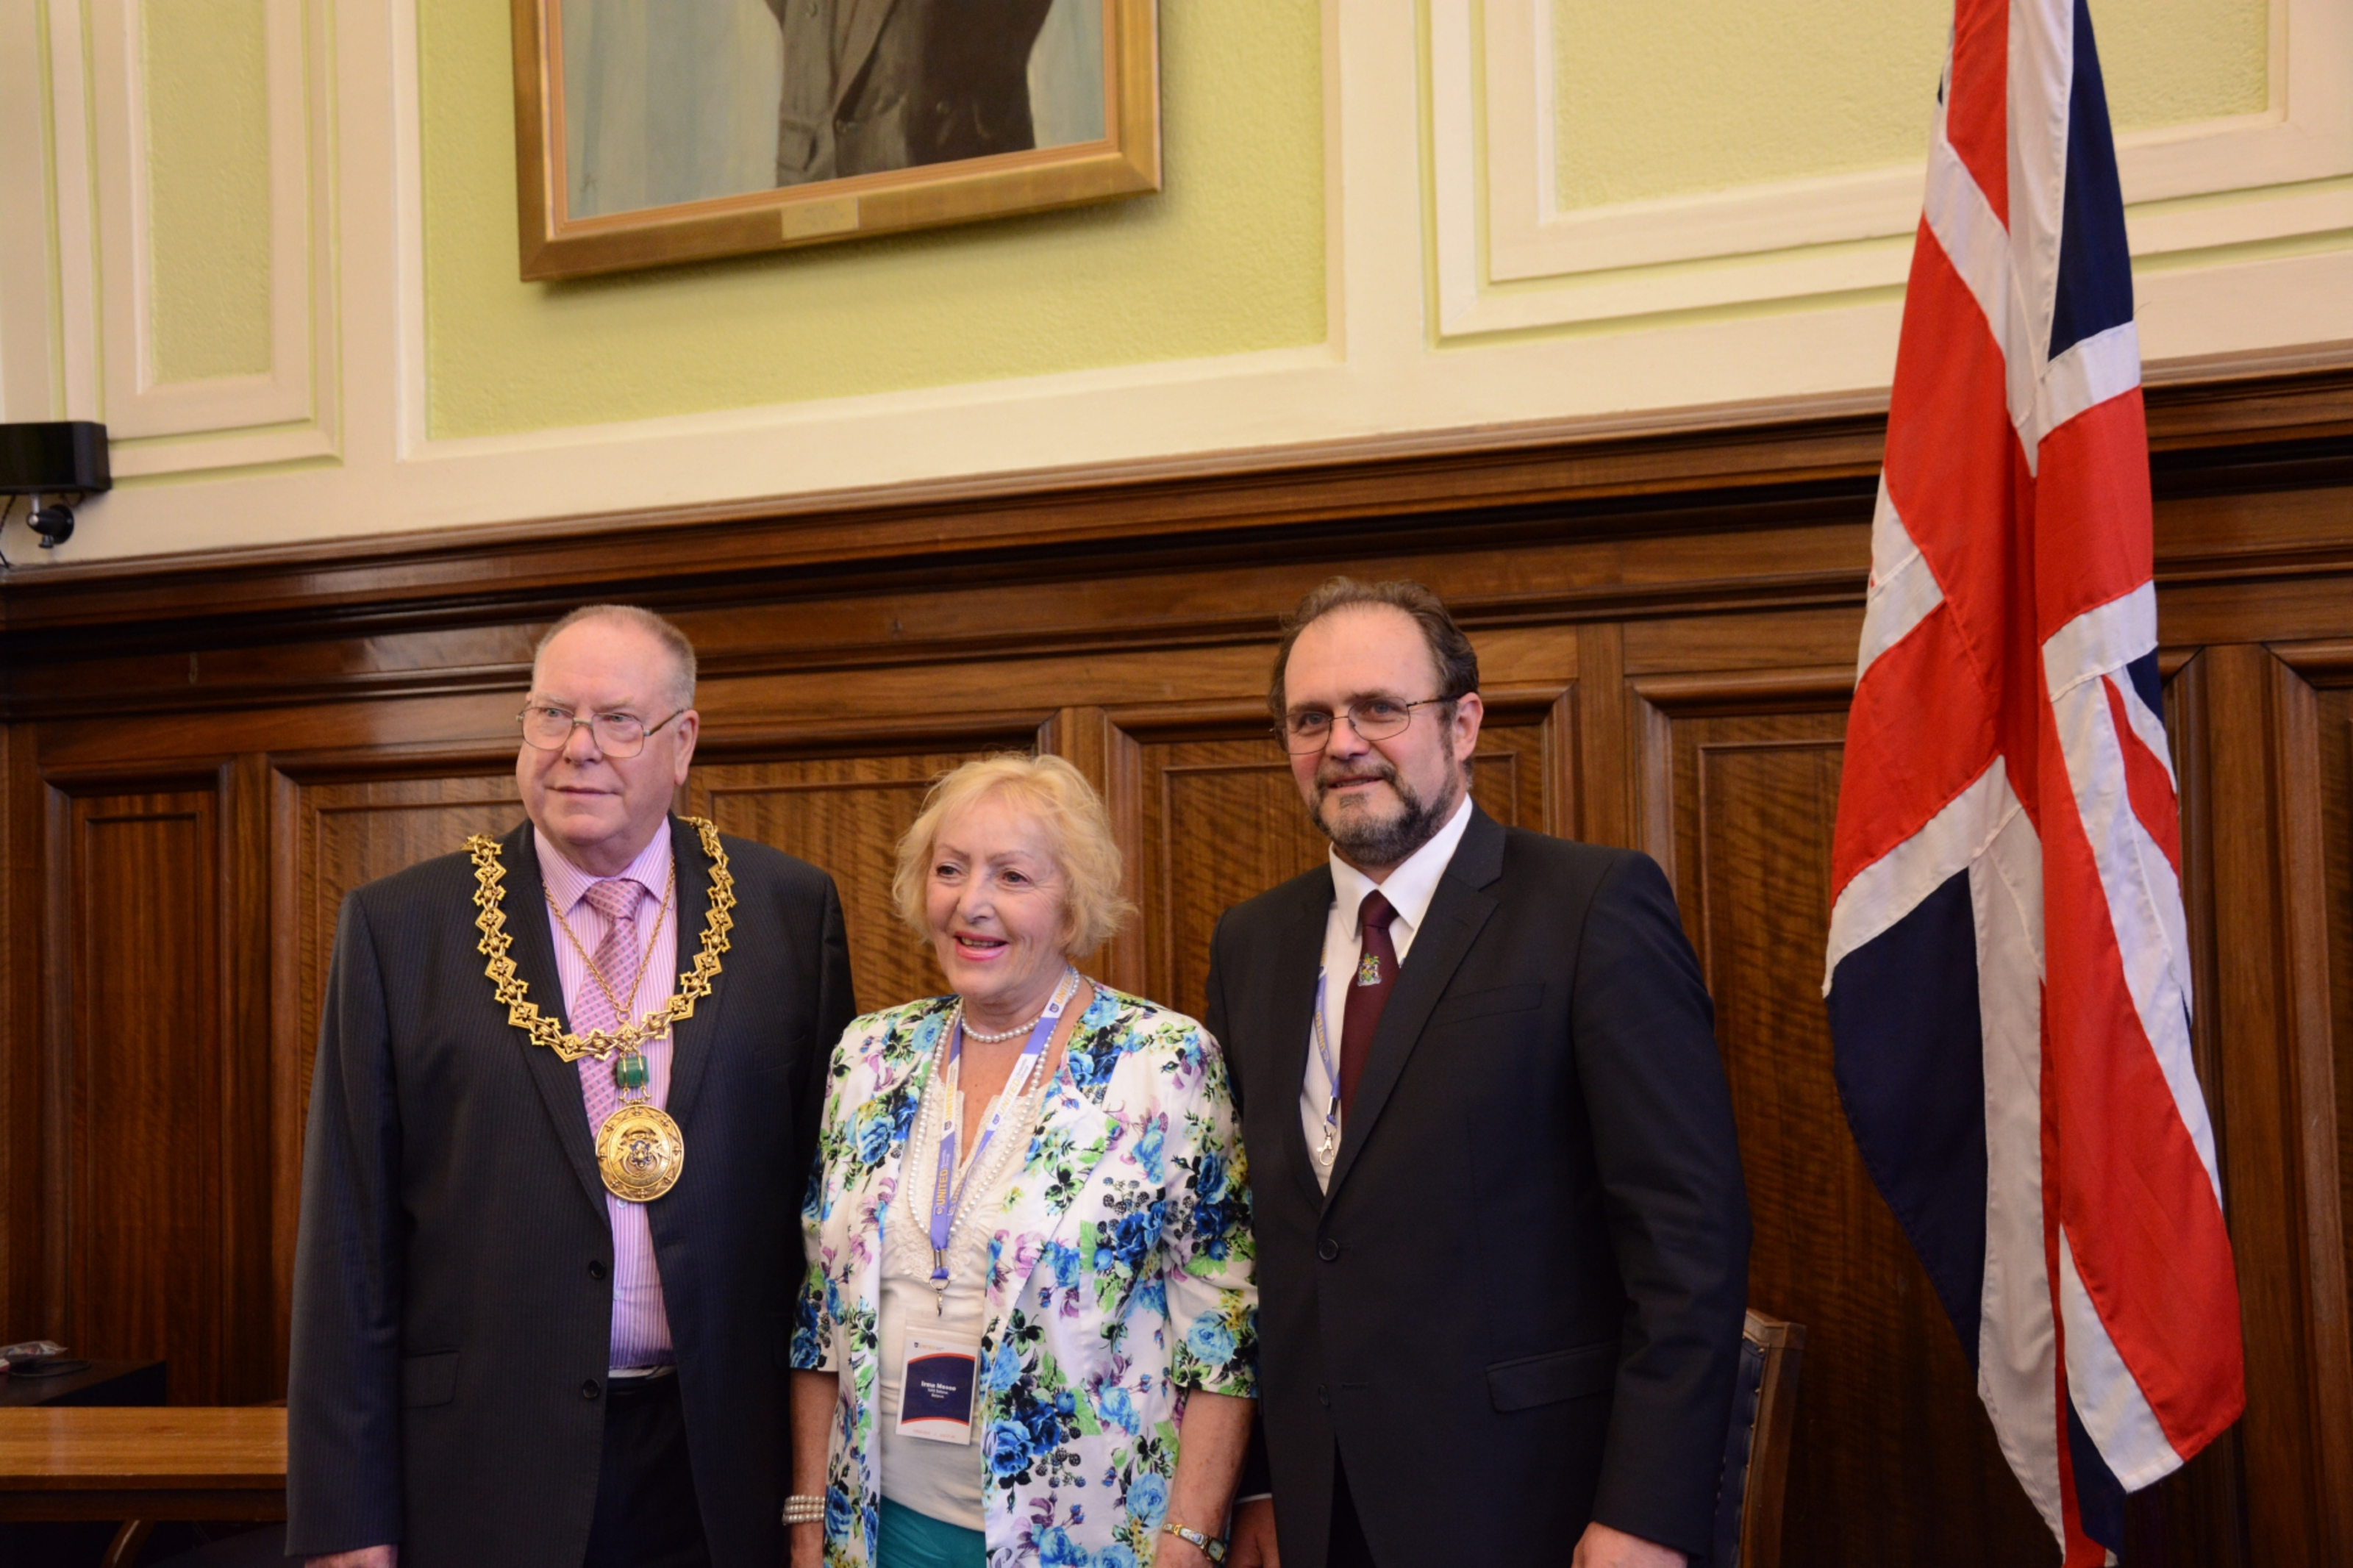 Lord Provost Bob Duncan with Professor Mosse and Professor Zhelev